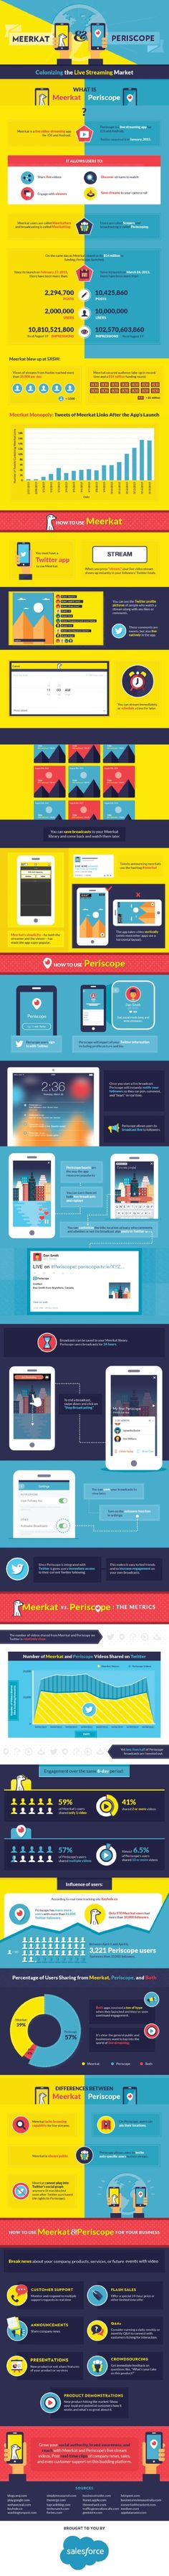 Marketing via #Periscope and #Meerkat #Infographic